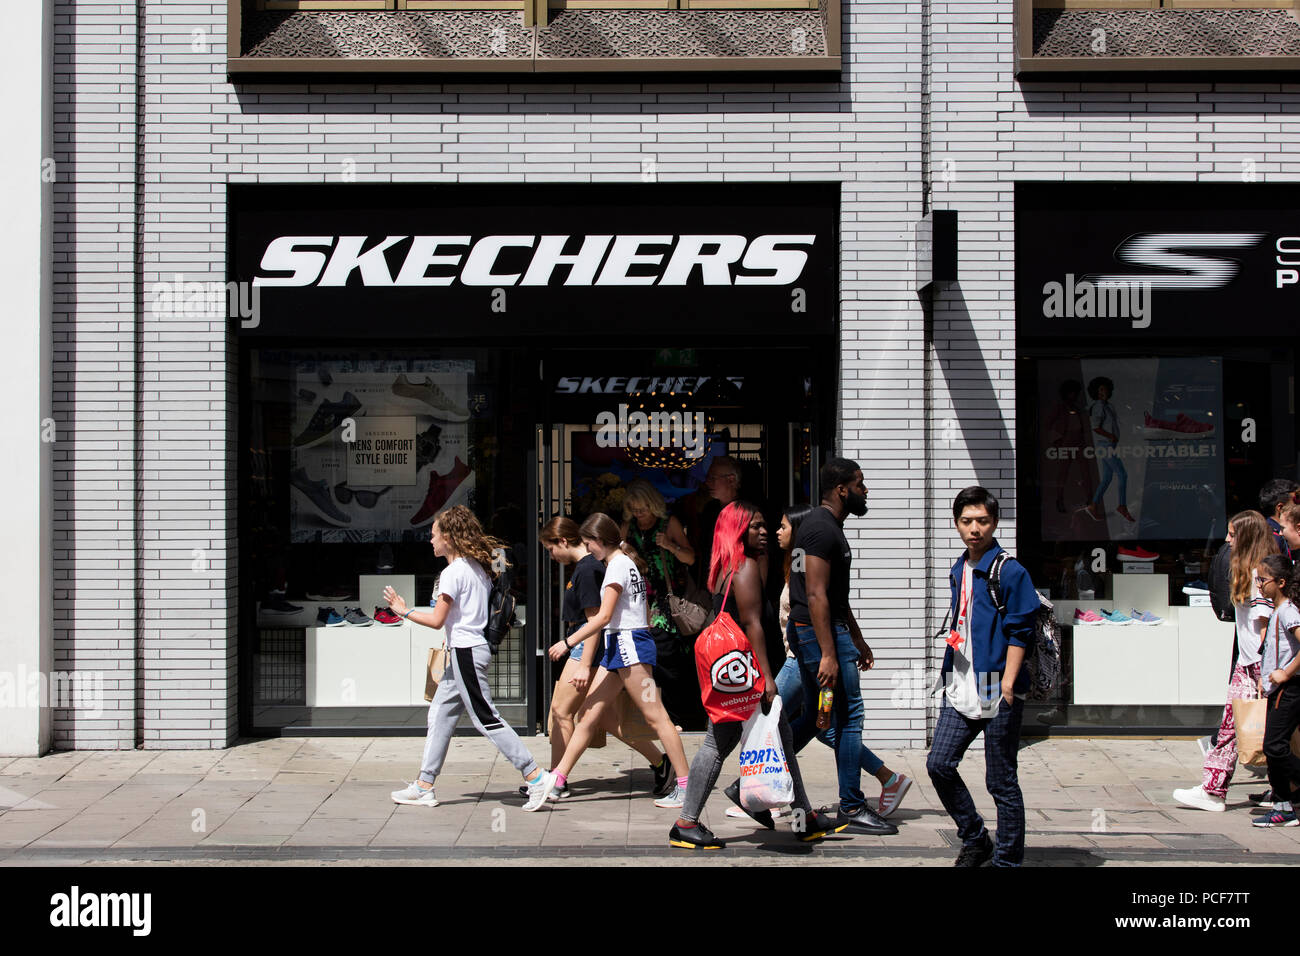 skechers oxford street